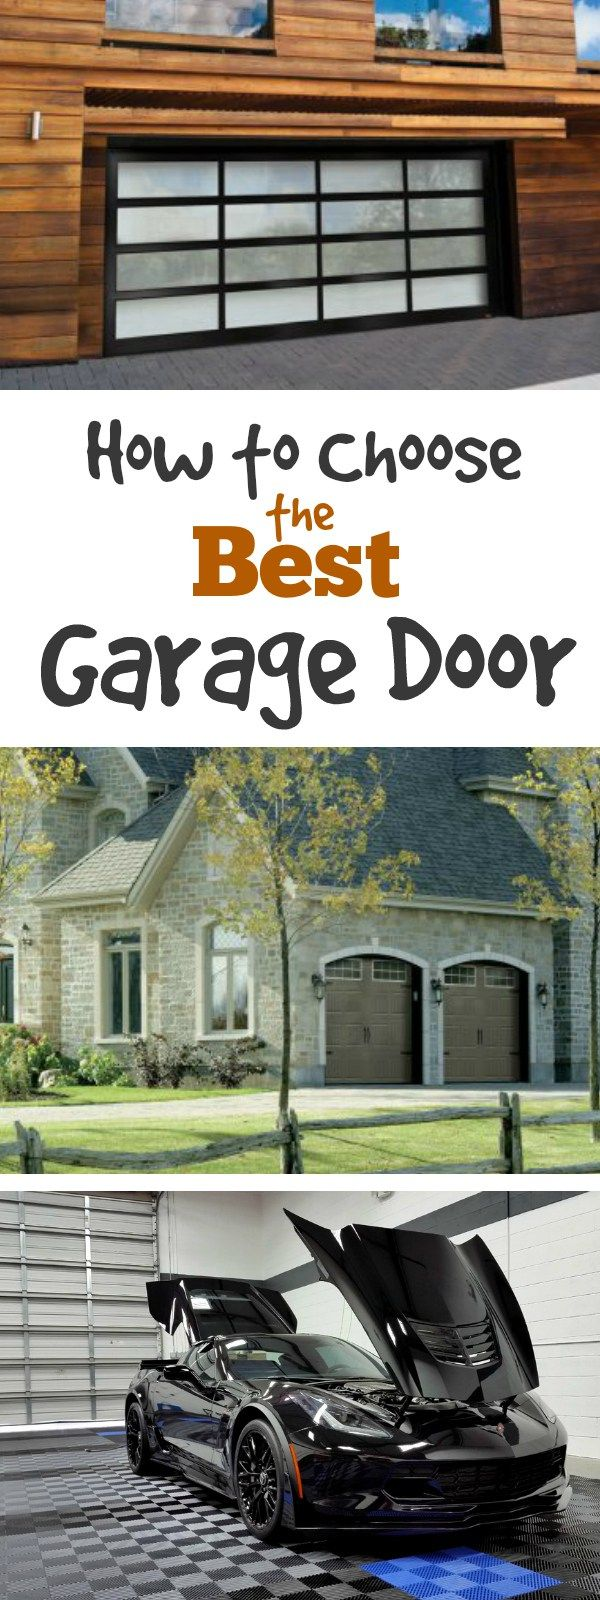 156 Best Images About Garage Door Ideas On Pinterest